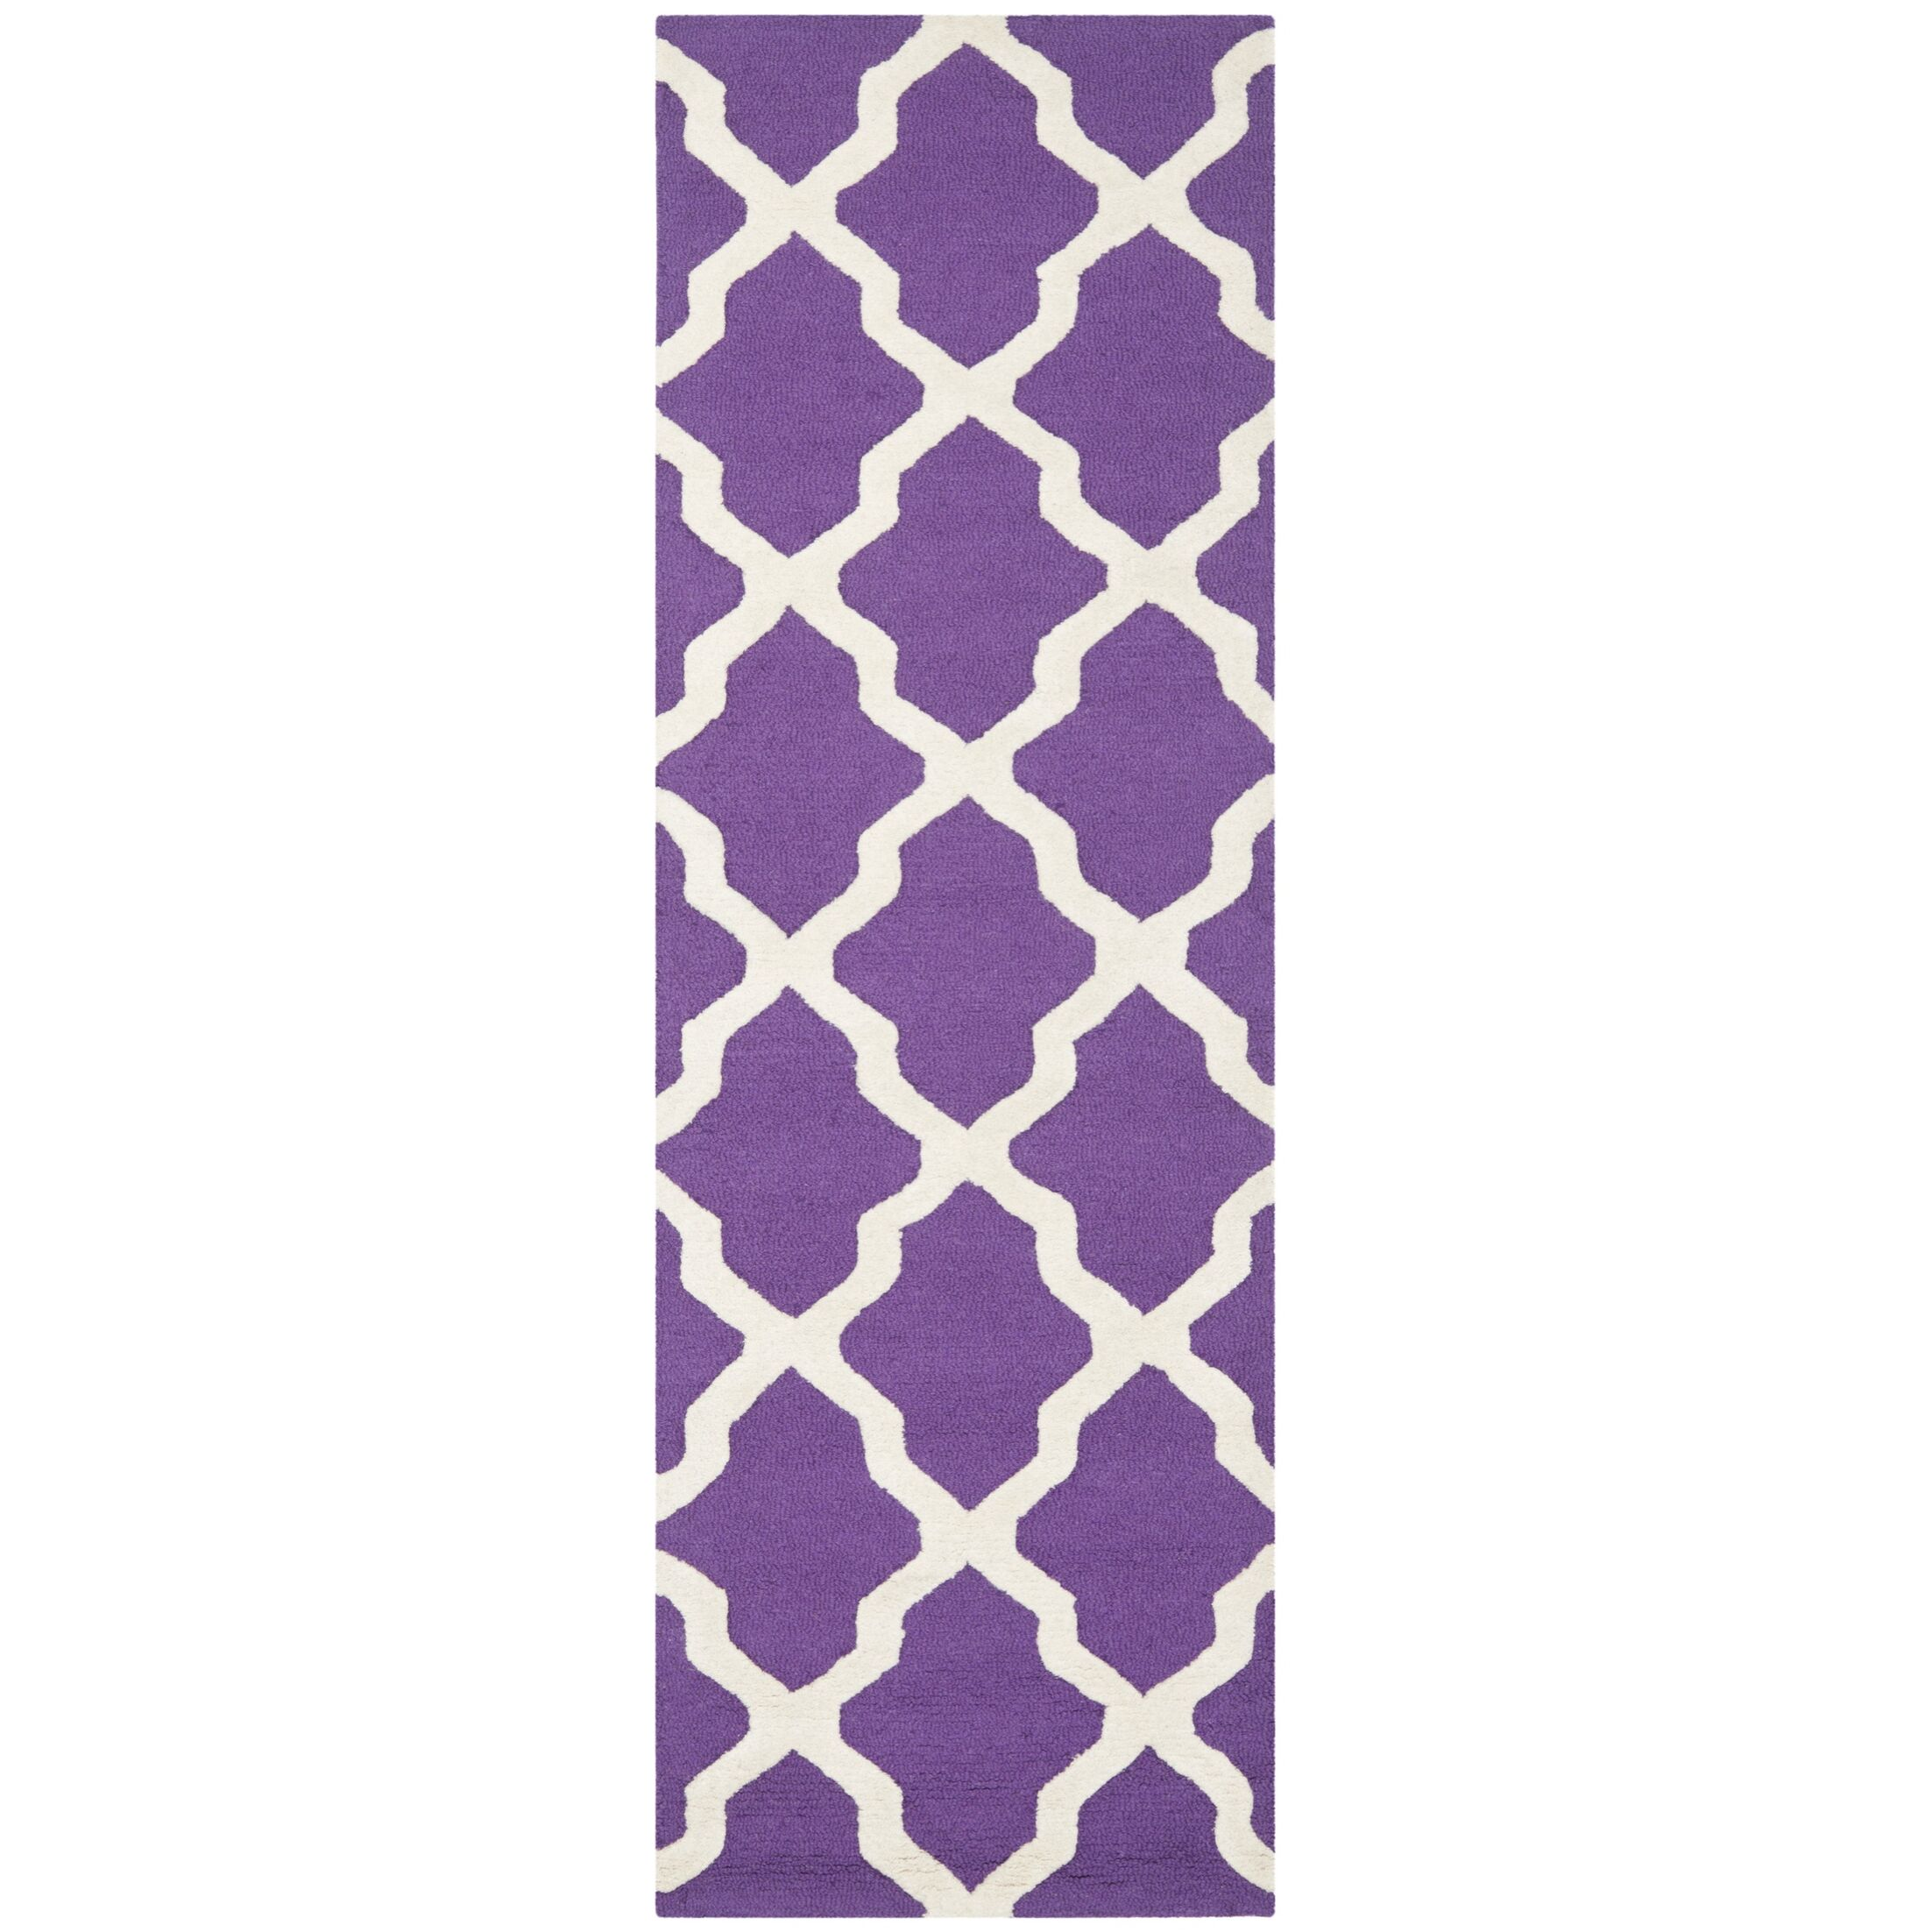 Charlenne Hand-Tufted Purple/Ivory Area Rug Rug Size: Runner 2'6